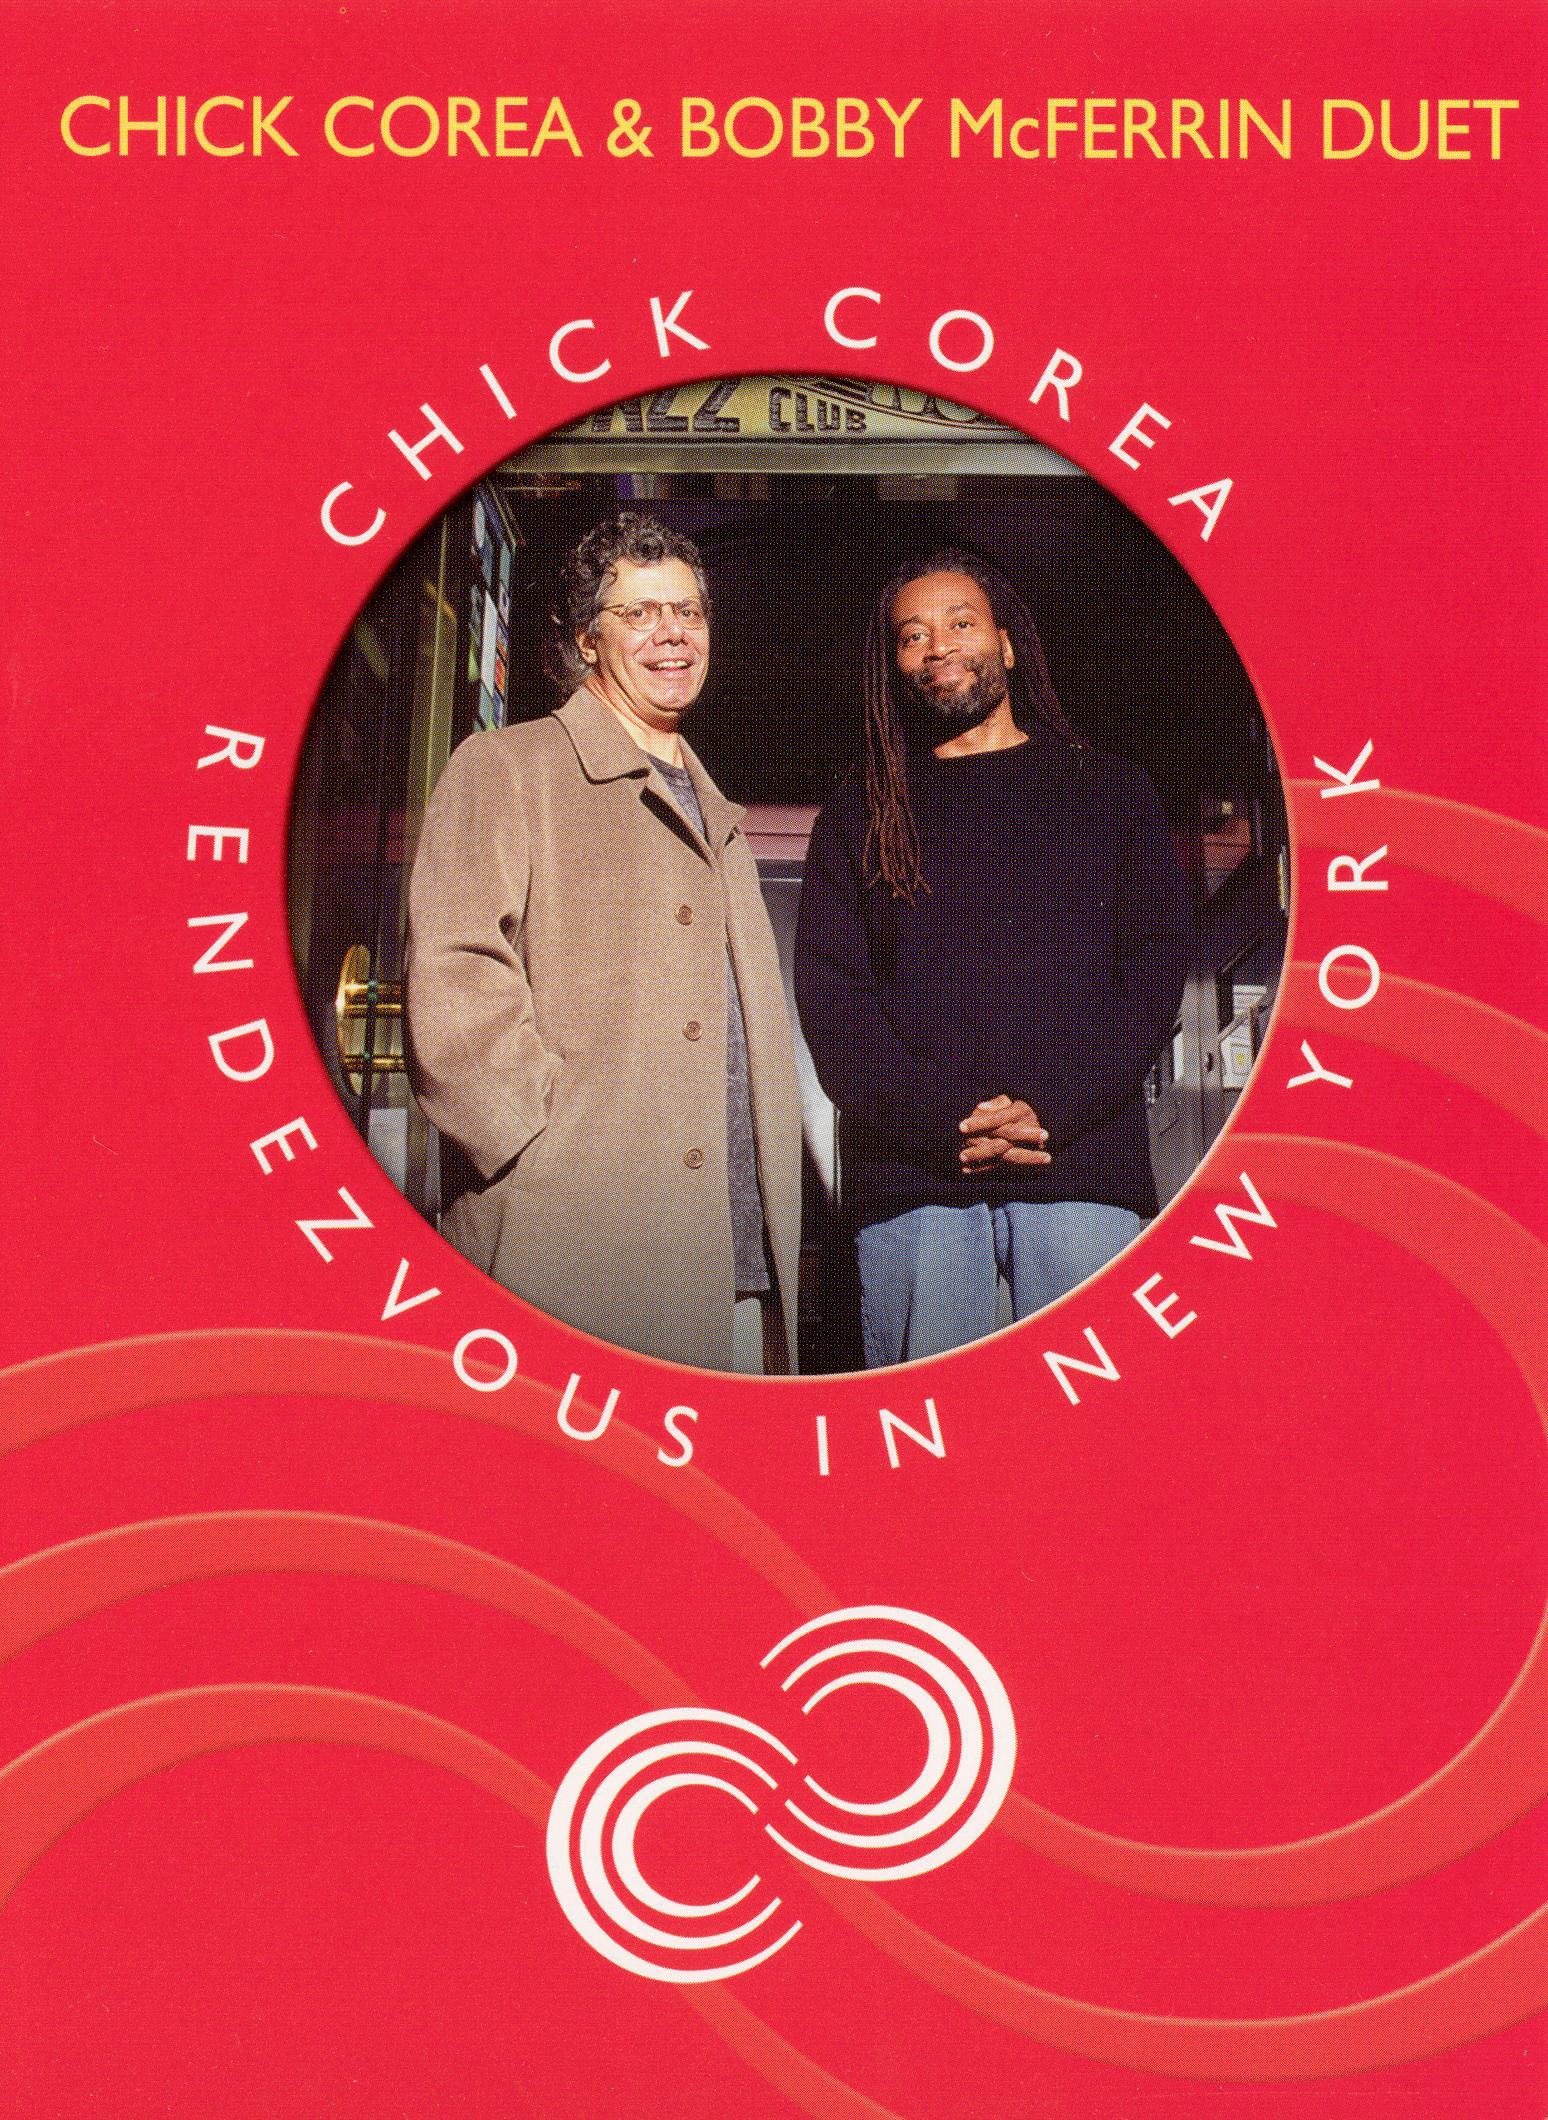 Chick Corea: Rendezvous in New York - Chick Corea & Bobby McFerrin Duet